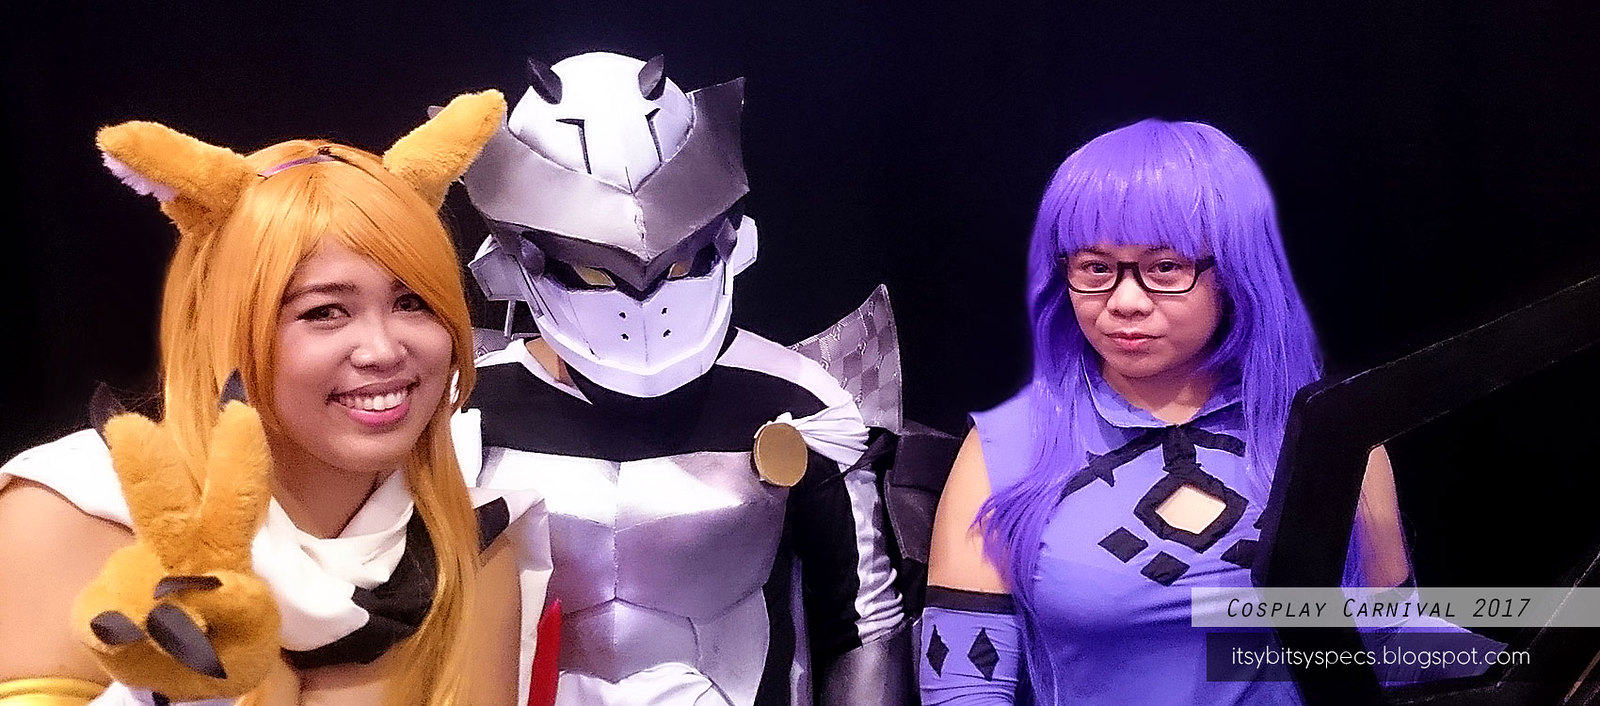 Cosplay Carnival 2017